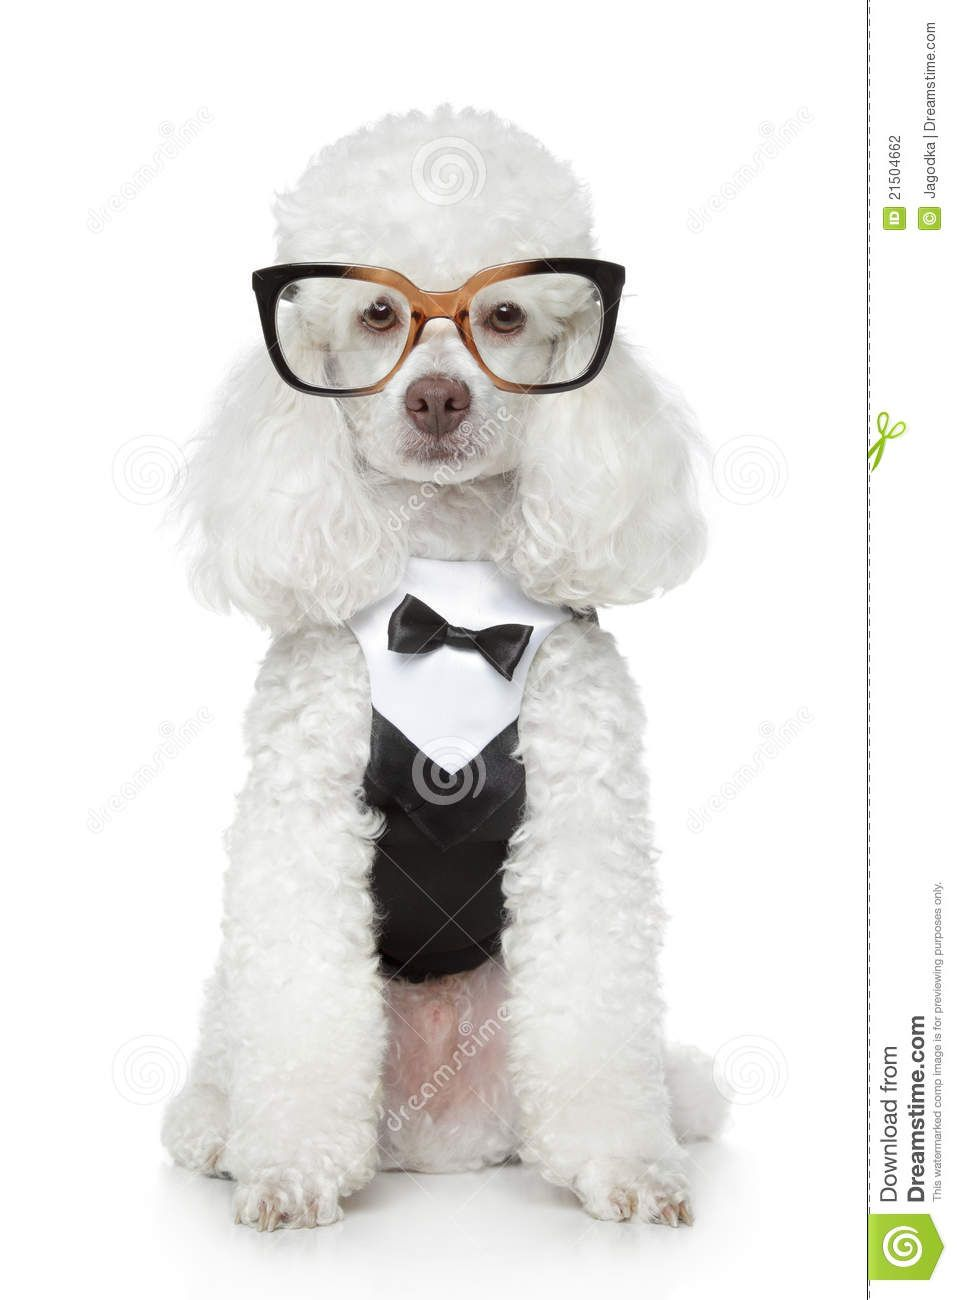 Funny Toy Poodle In A Tuxedo And Glasses Toy Poodle White Toy Poodle Poodle